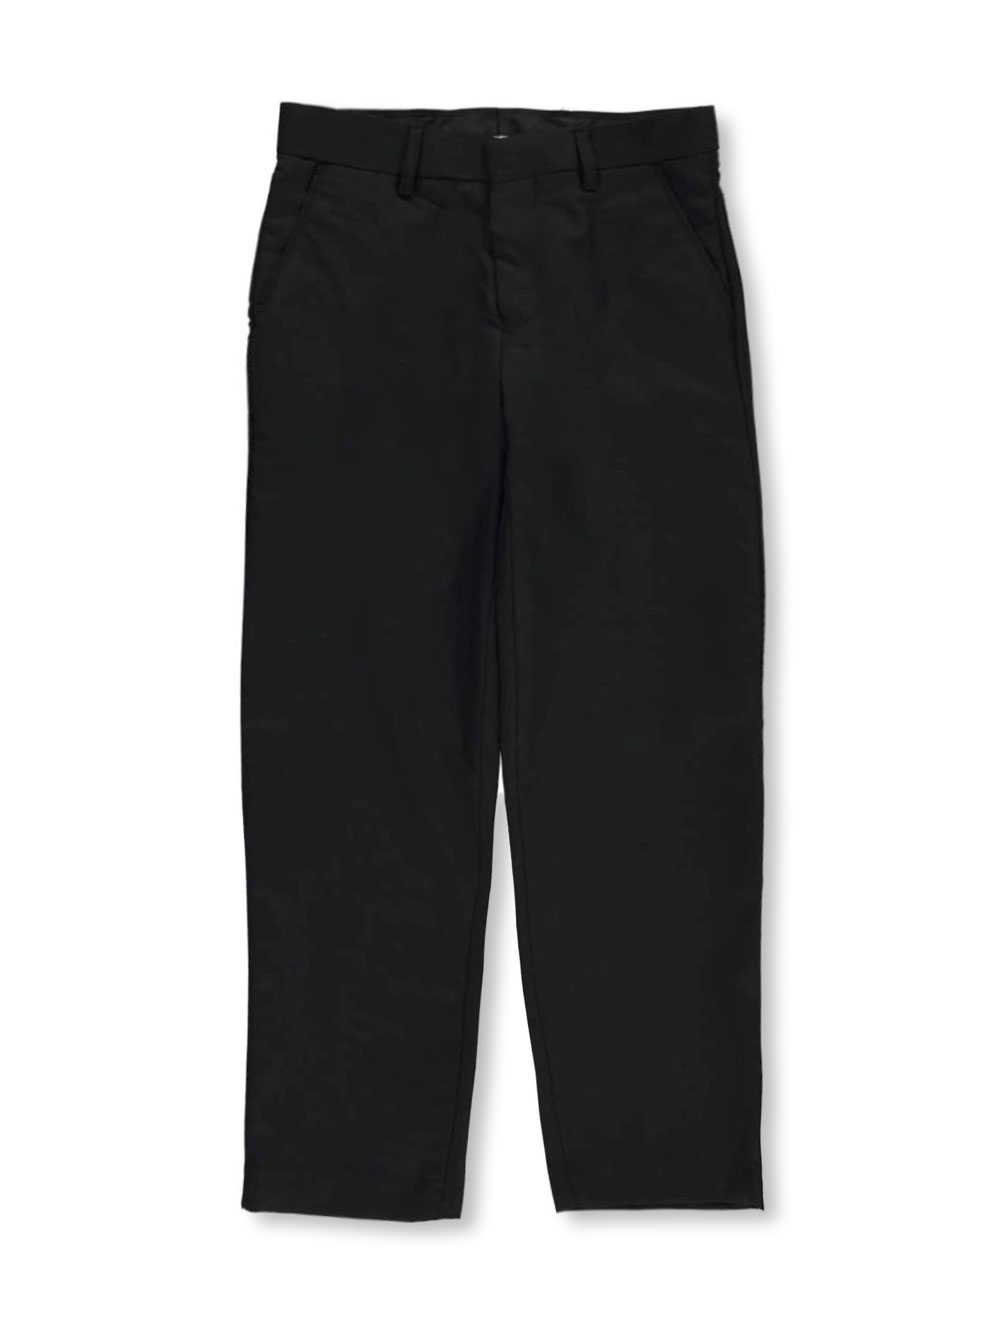 Brand Slim Fit Dress Pants